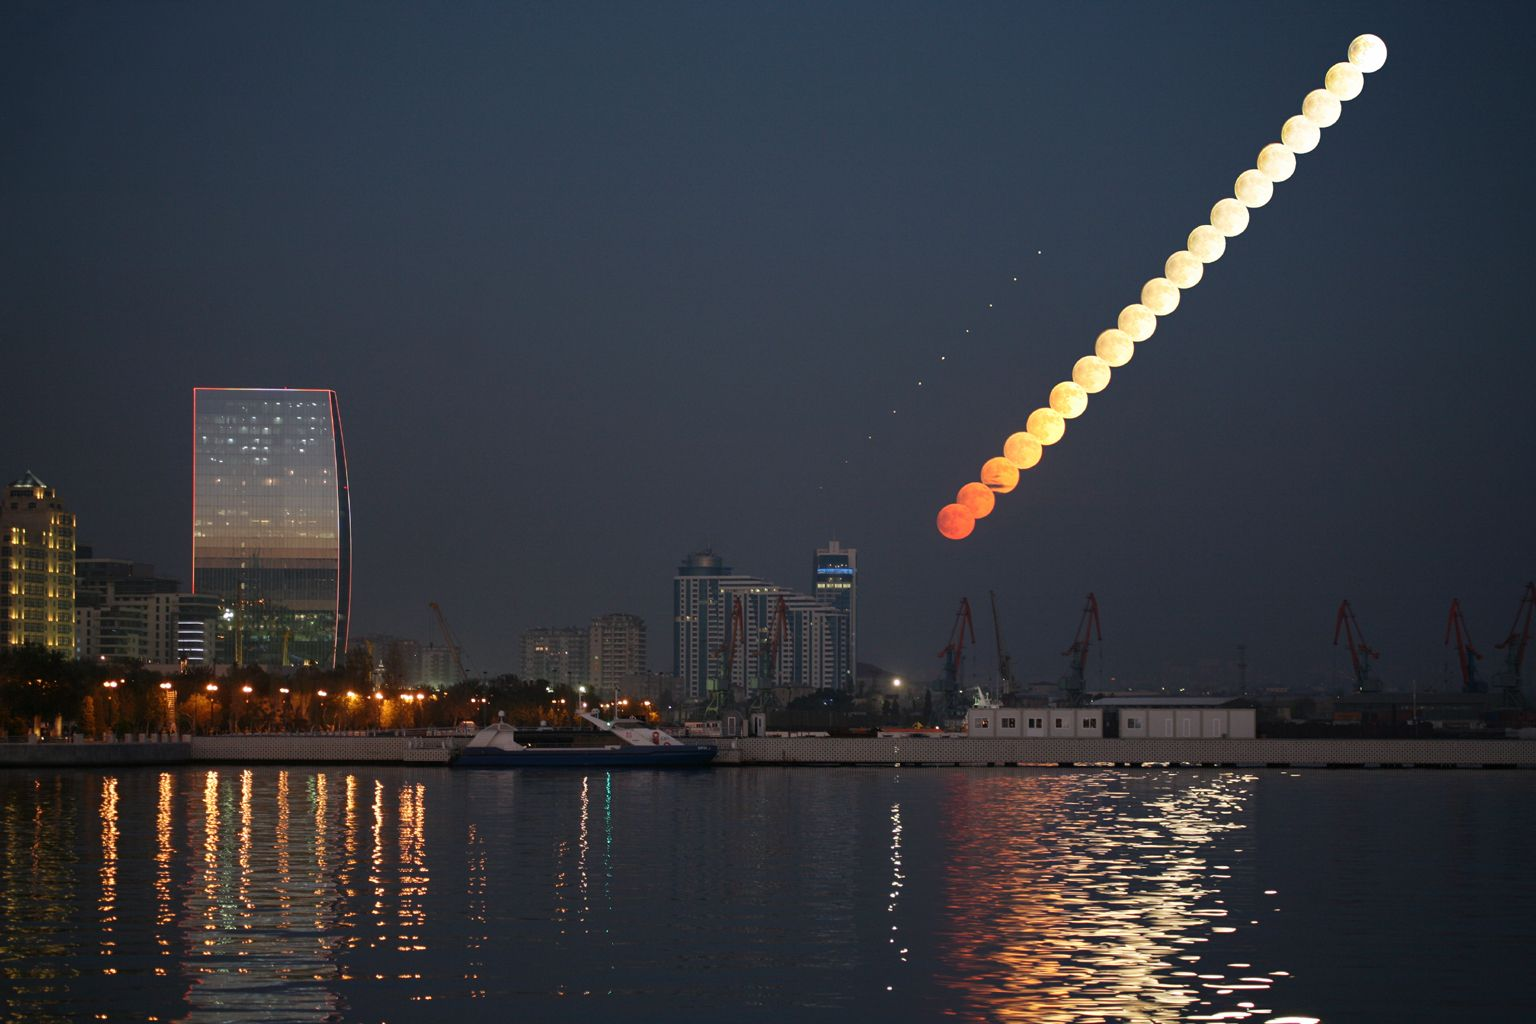 Baku Moonrise Astronomy Pictures Astronomy Brightest Planet